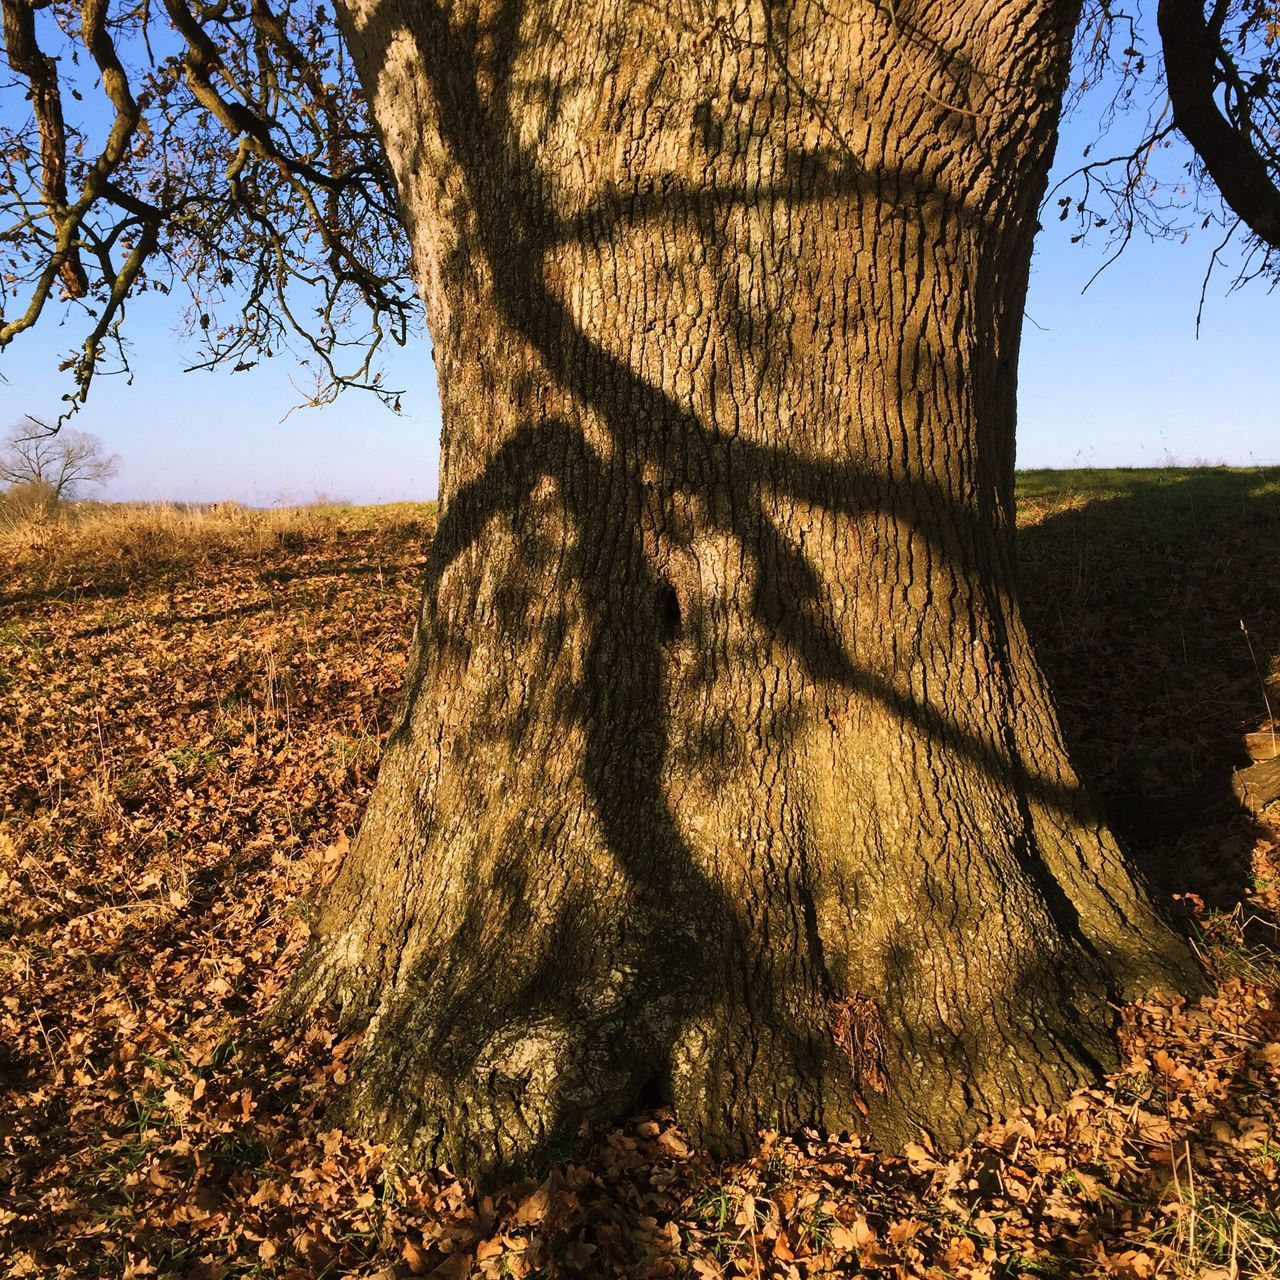 Shadow on old oak tree trunk Tree Nature Sunlight Growth Tranquility Tree Trunk Outdoors Shadow No People Field Day Tranquil Scene Beauty In Nature Landscape Scenics Sky Oak Oaks Bark Texture Shadow Shadows Nature Countryside Trees